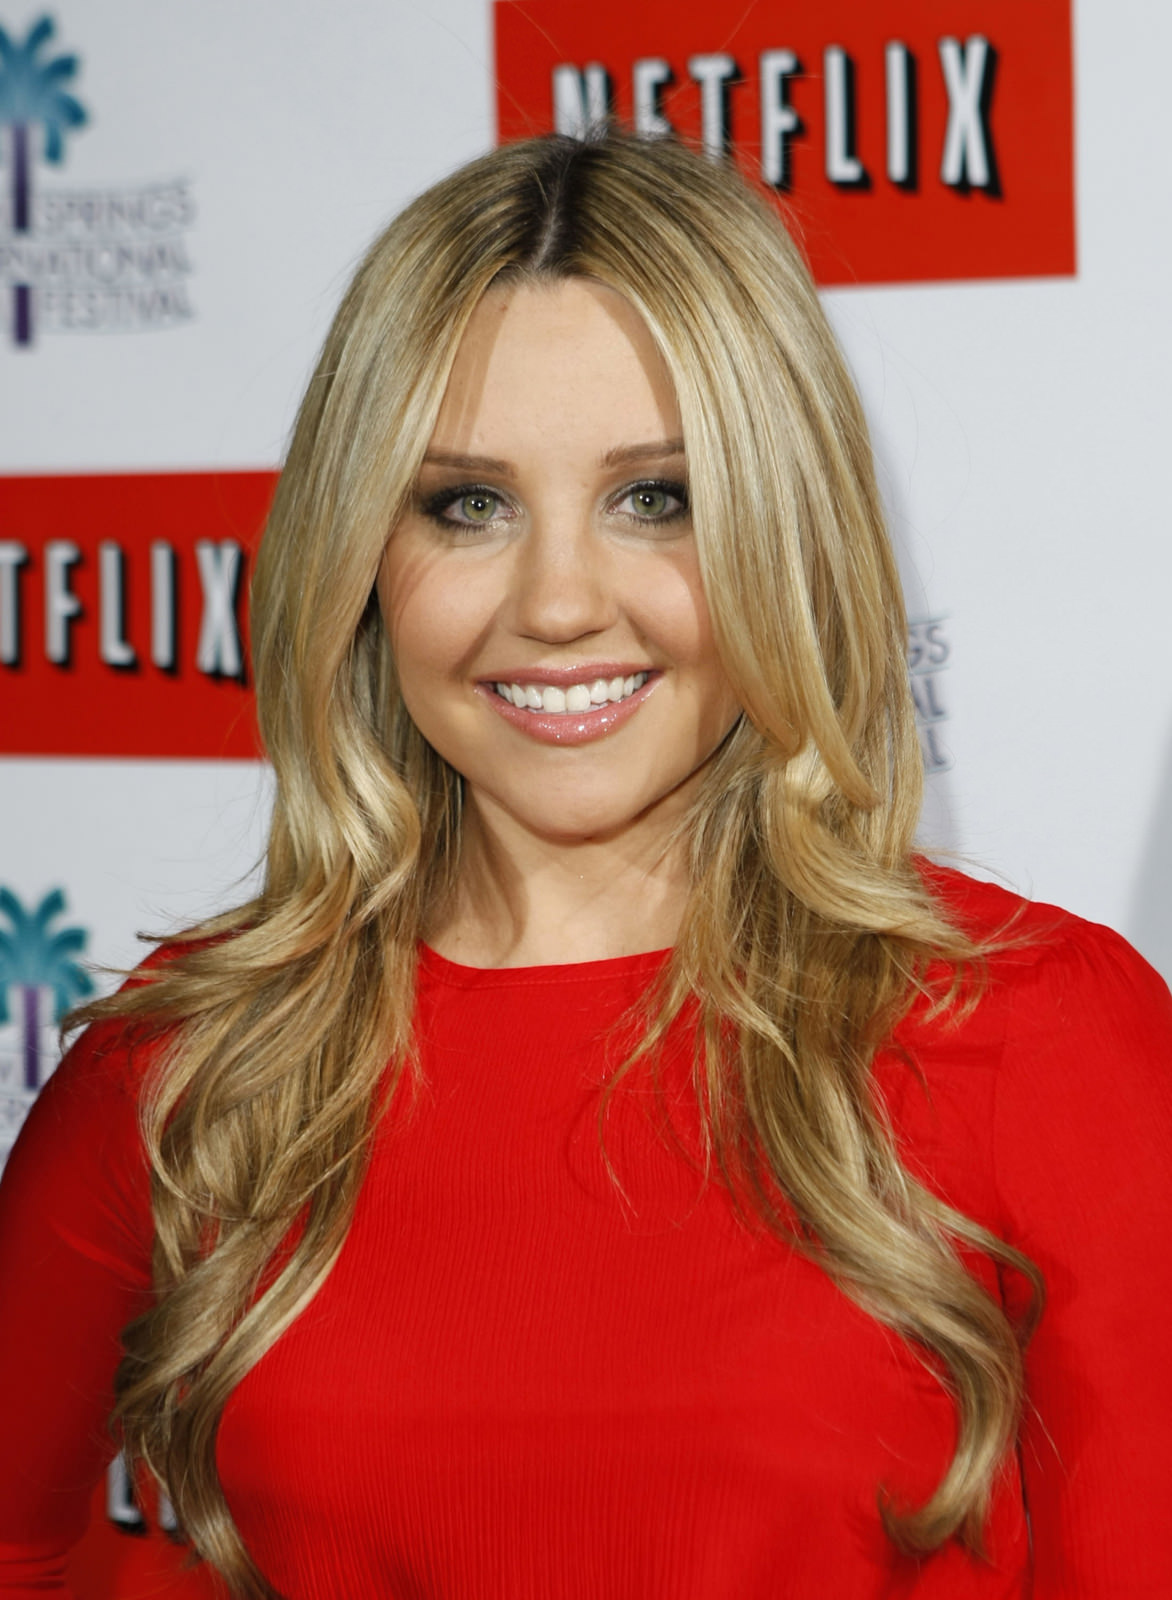 Amanda Bynes Photo Gallery